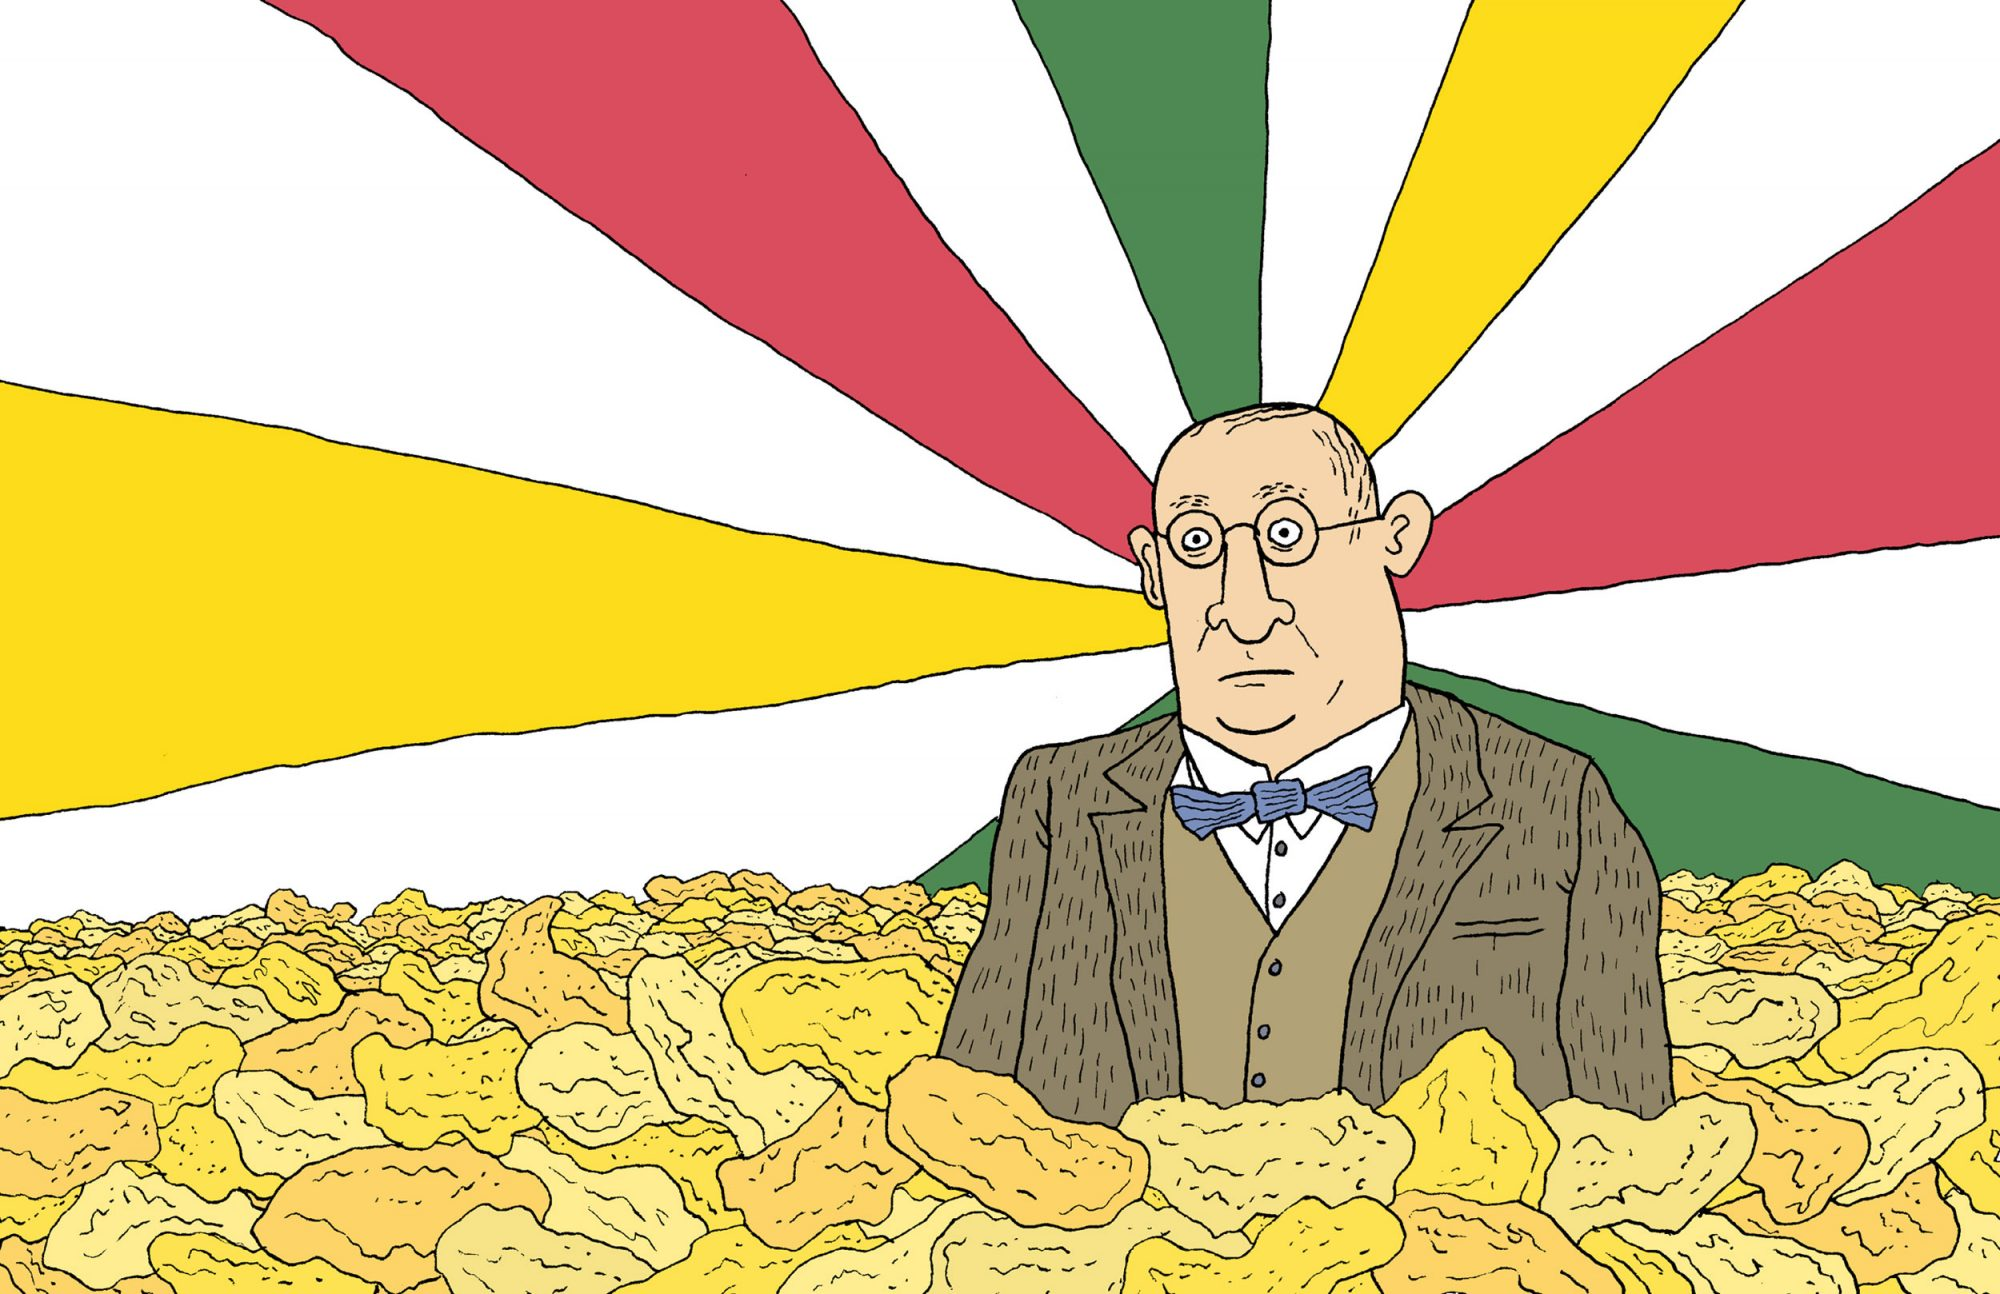 EC: How William Kellogg Went from Broom Salesman to Cereal Kingpin